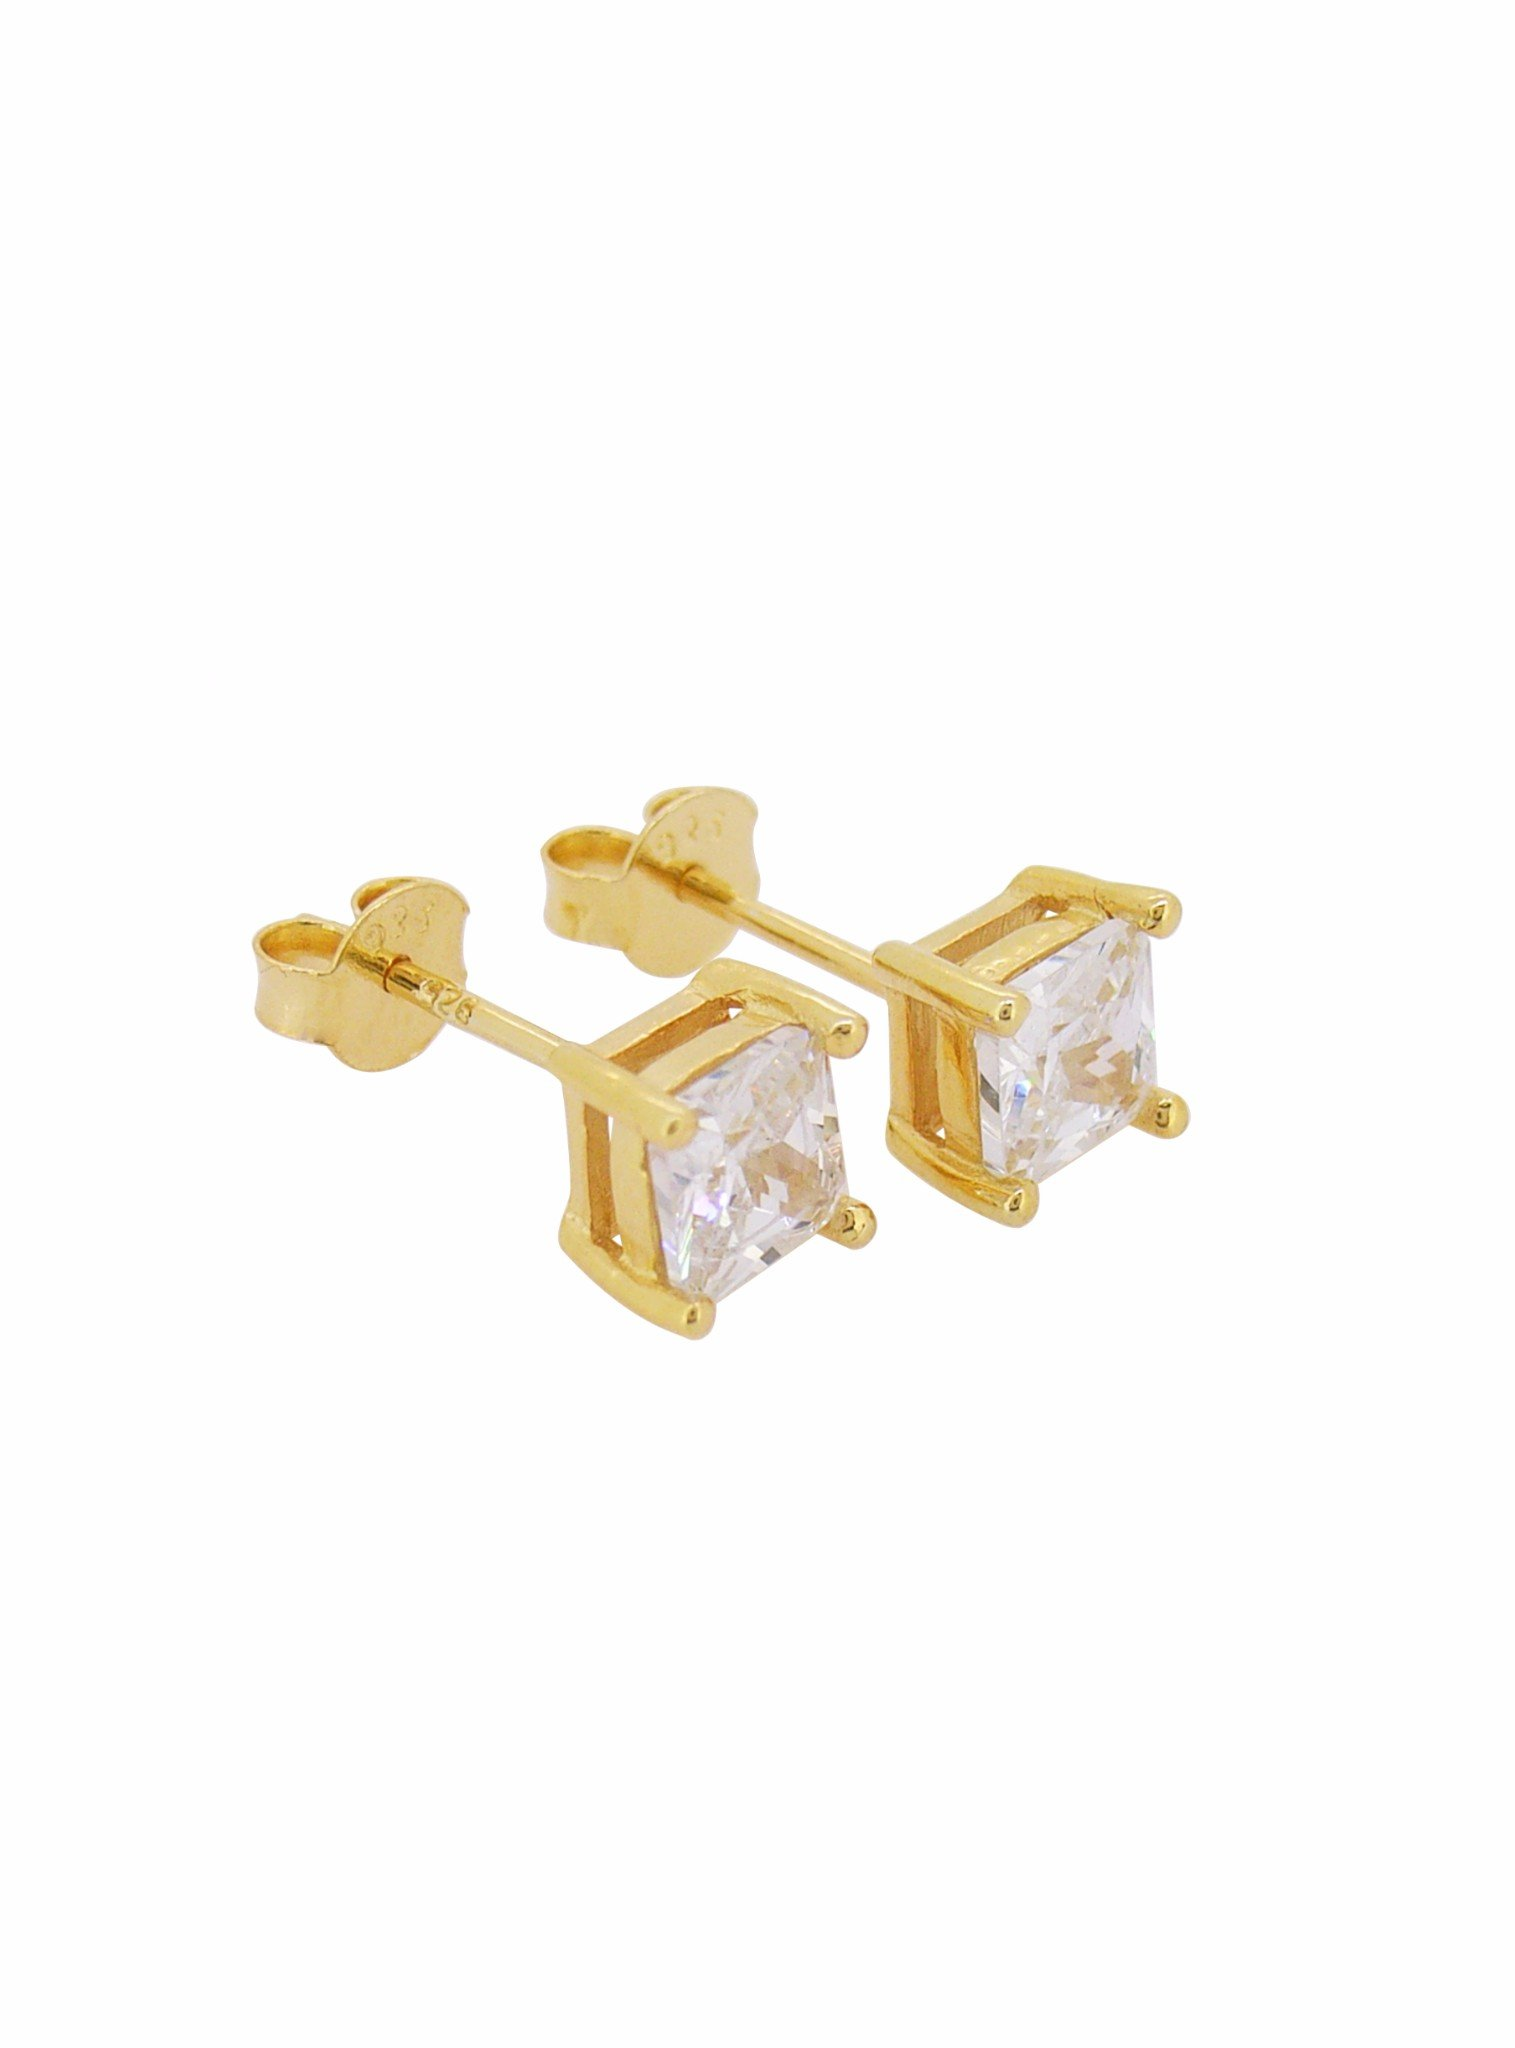 Aaliyah Princess Square 4mm CZ Earrings in Gold